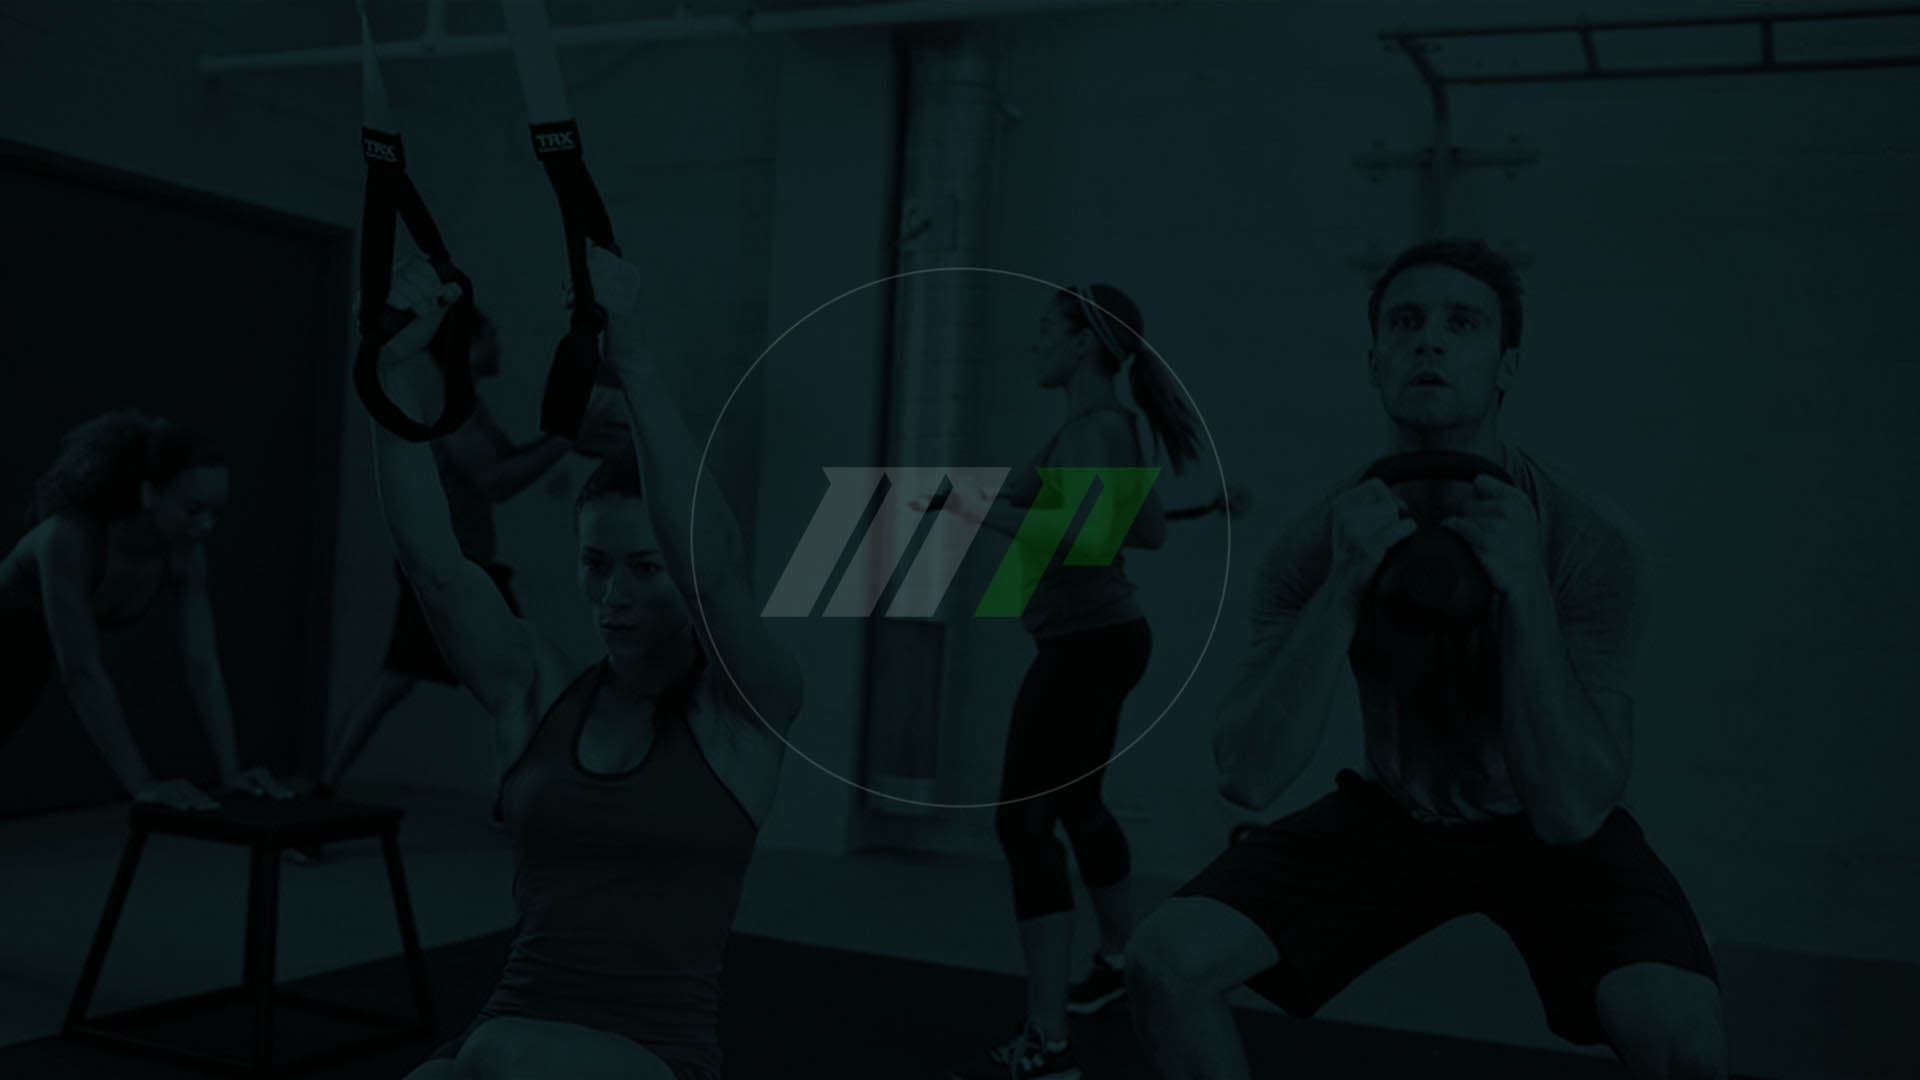 TRX® Functional Training Course (FTC) seminar banner by MPBalatsinos